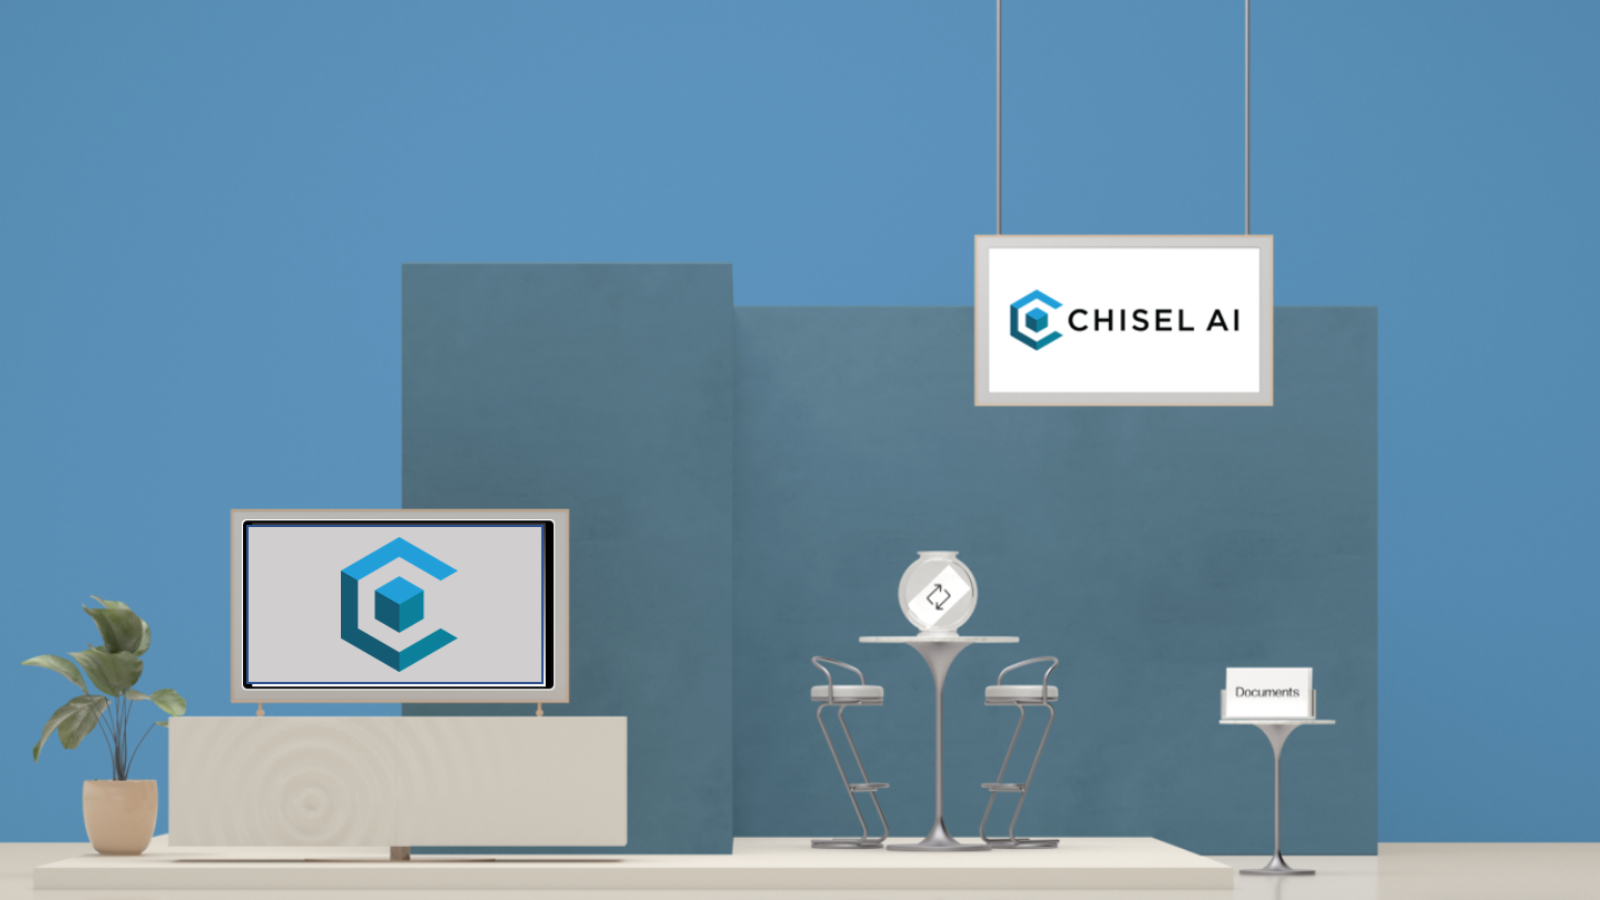 _Chisel AI ITC Booth 2020 Twitter